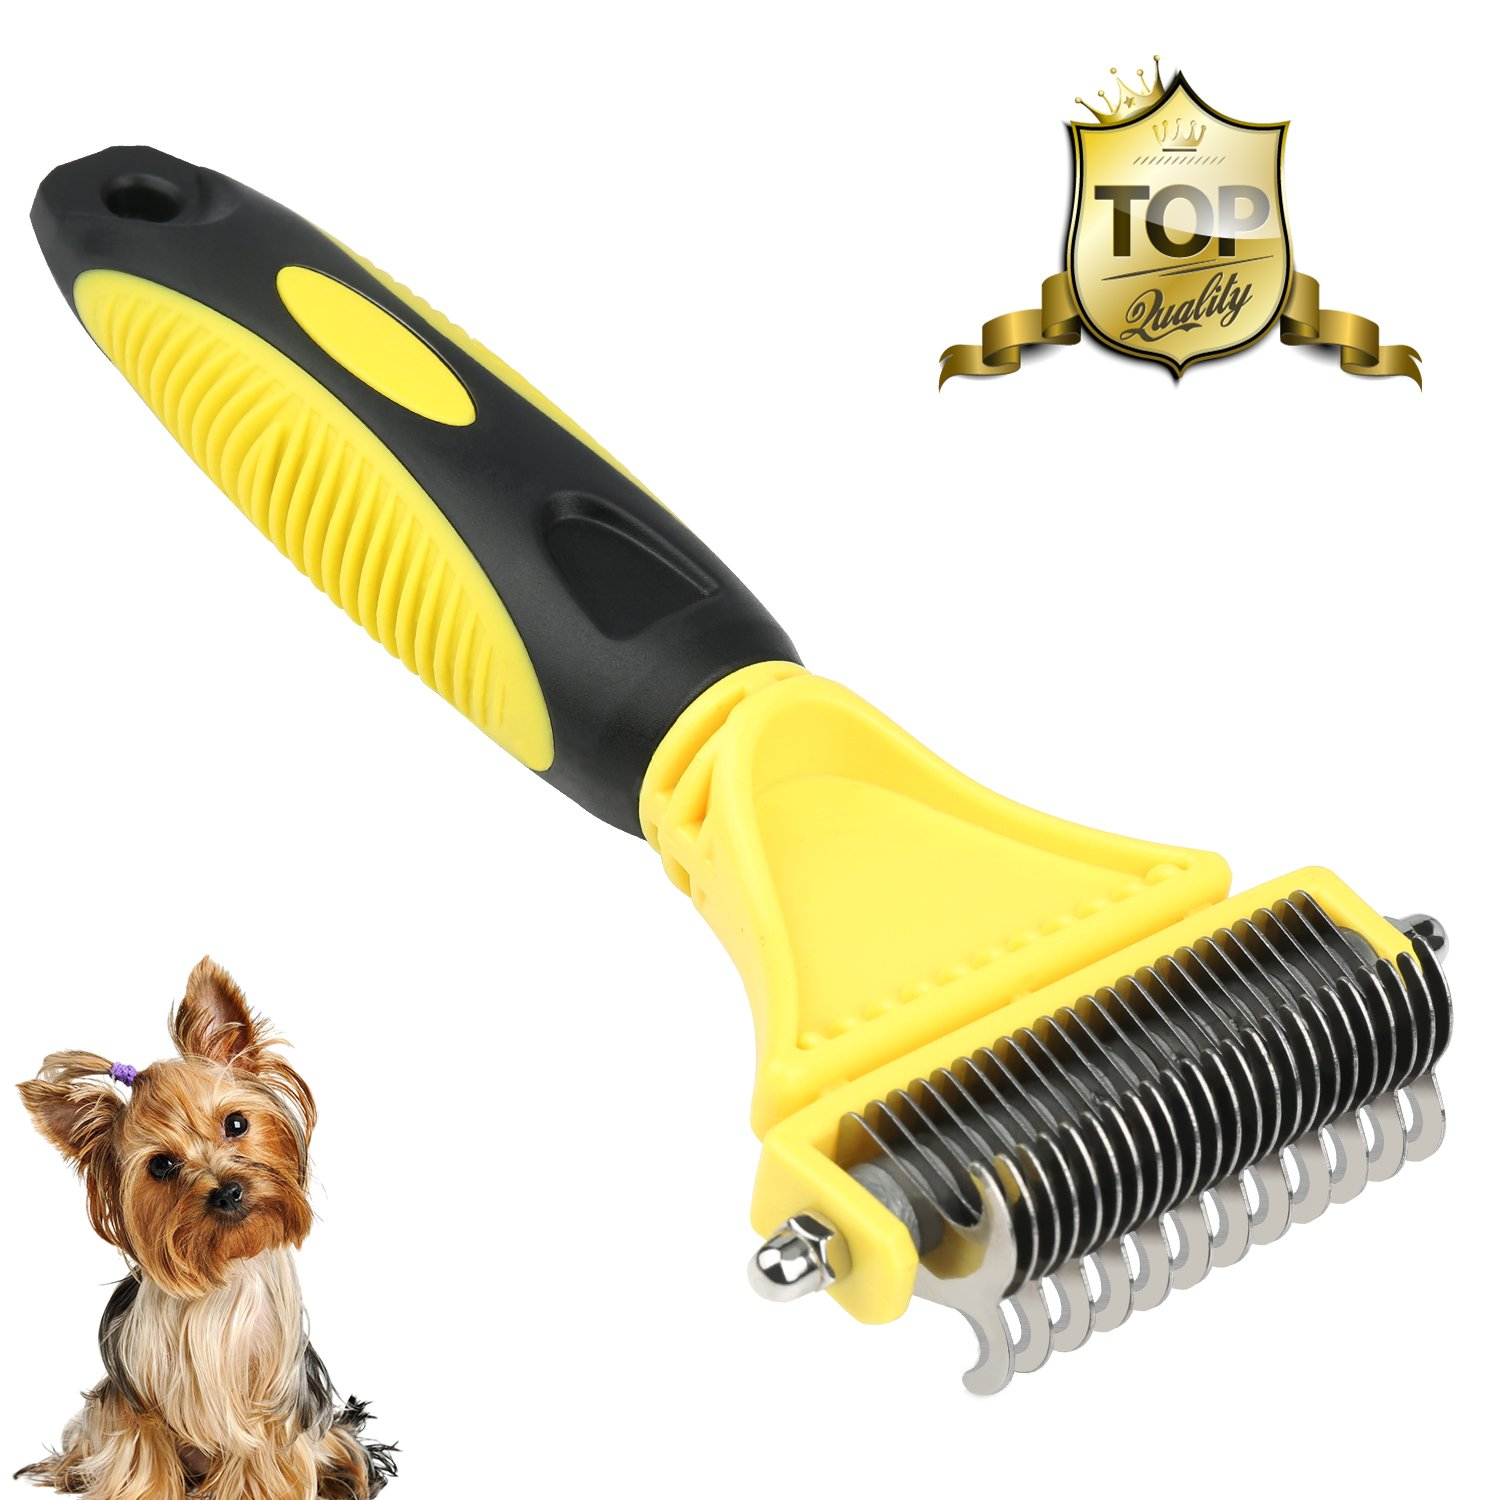 WU CHUNLING Pet Dematting Comb, Self Cleaning Brush for Dog Grooming Brush Tool, Removes Loose Undercoat, Mats and Tangled Hair for Dogs and Cats with Long or Short Hair